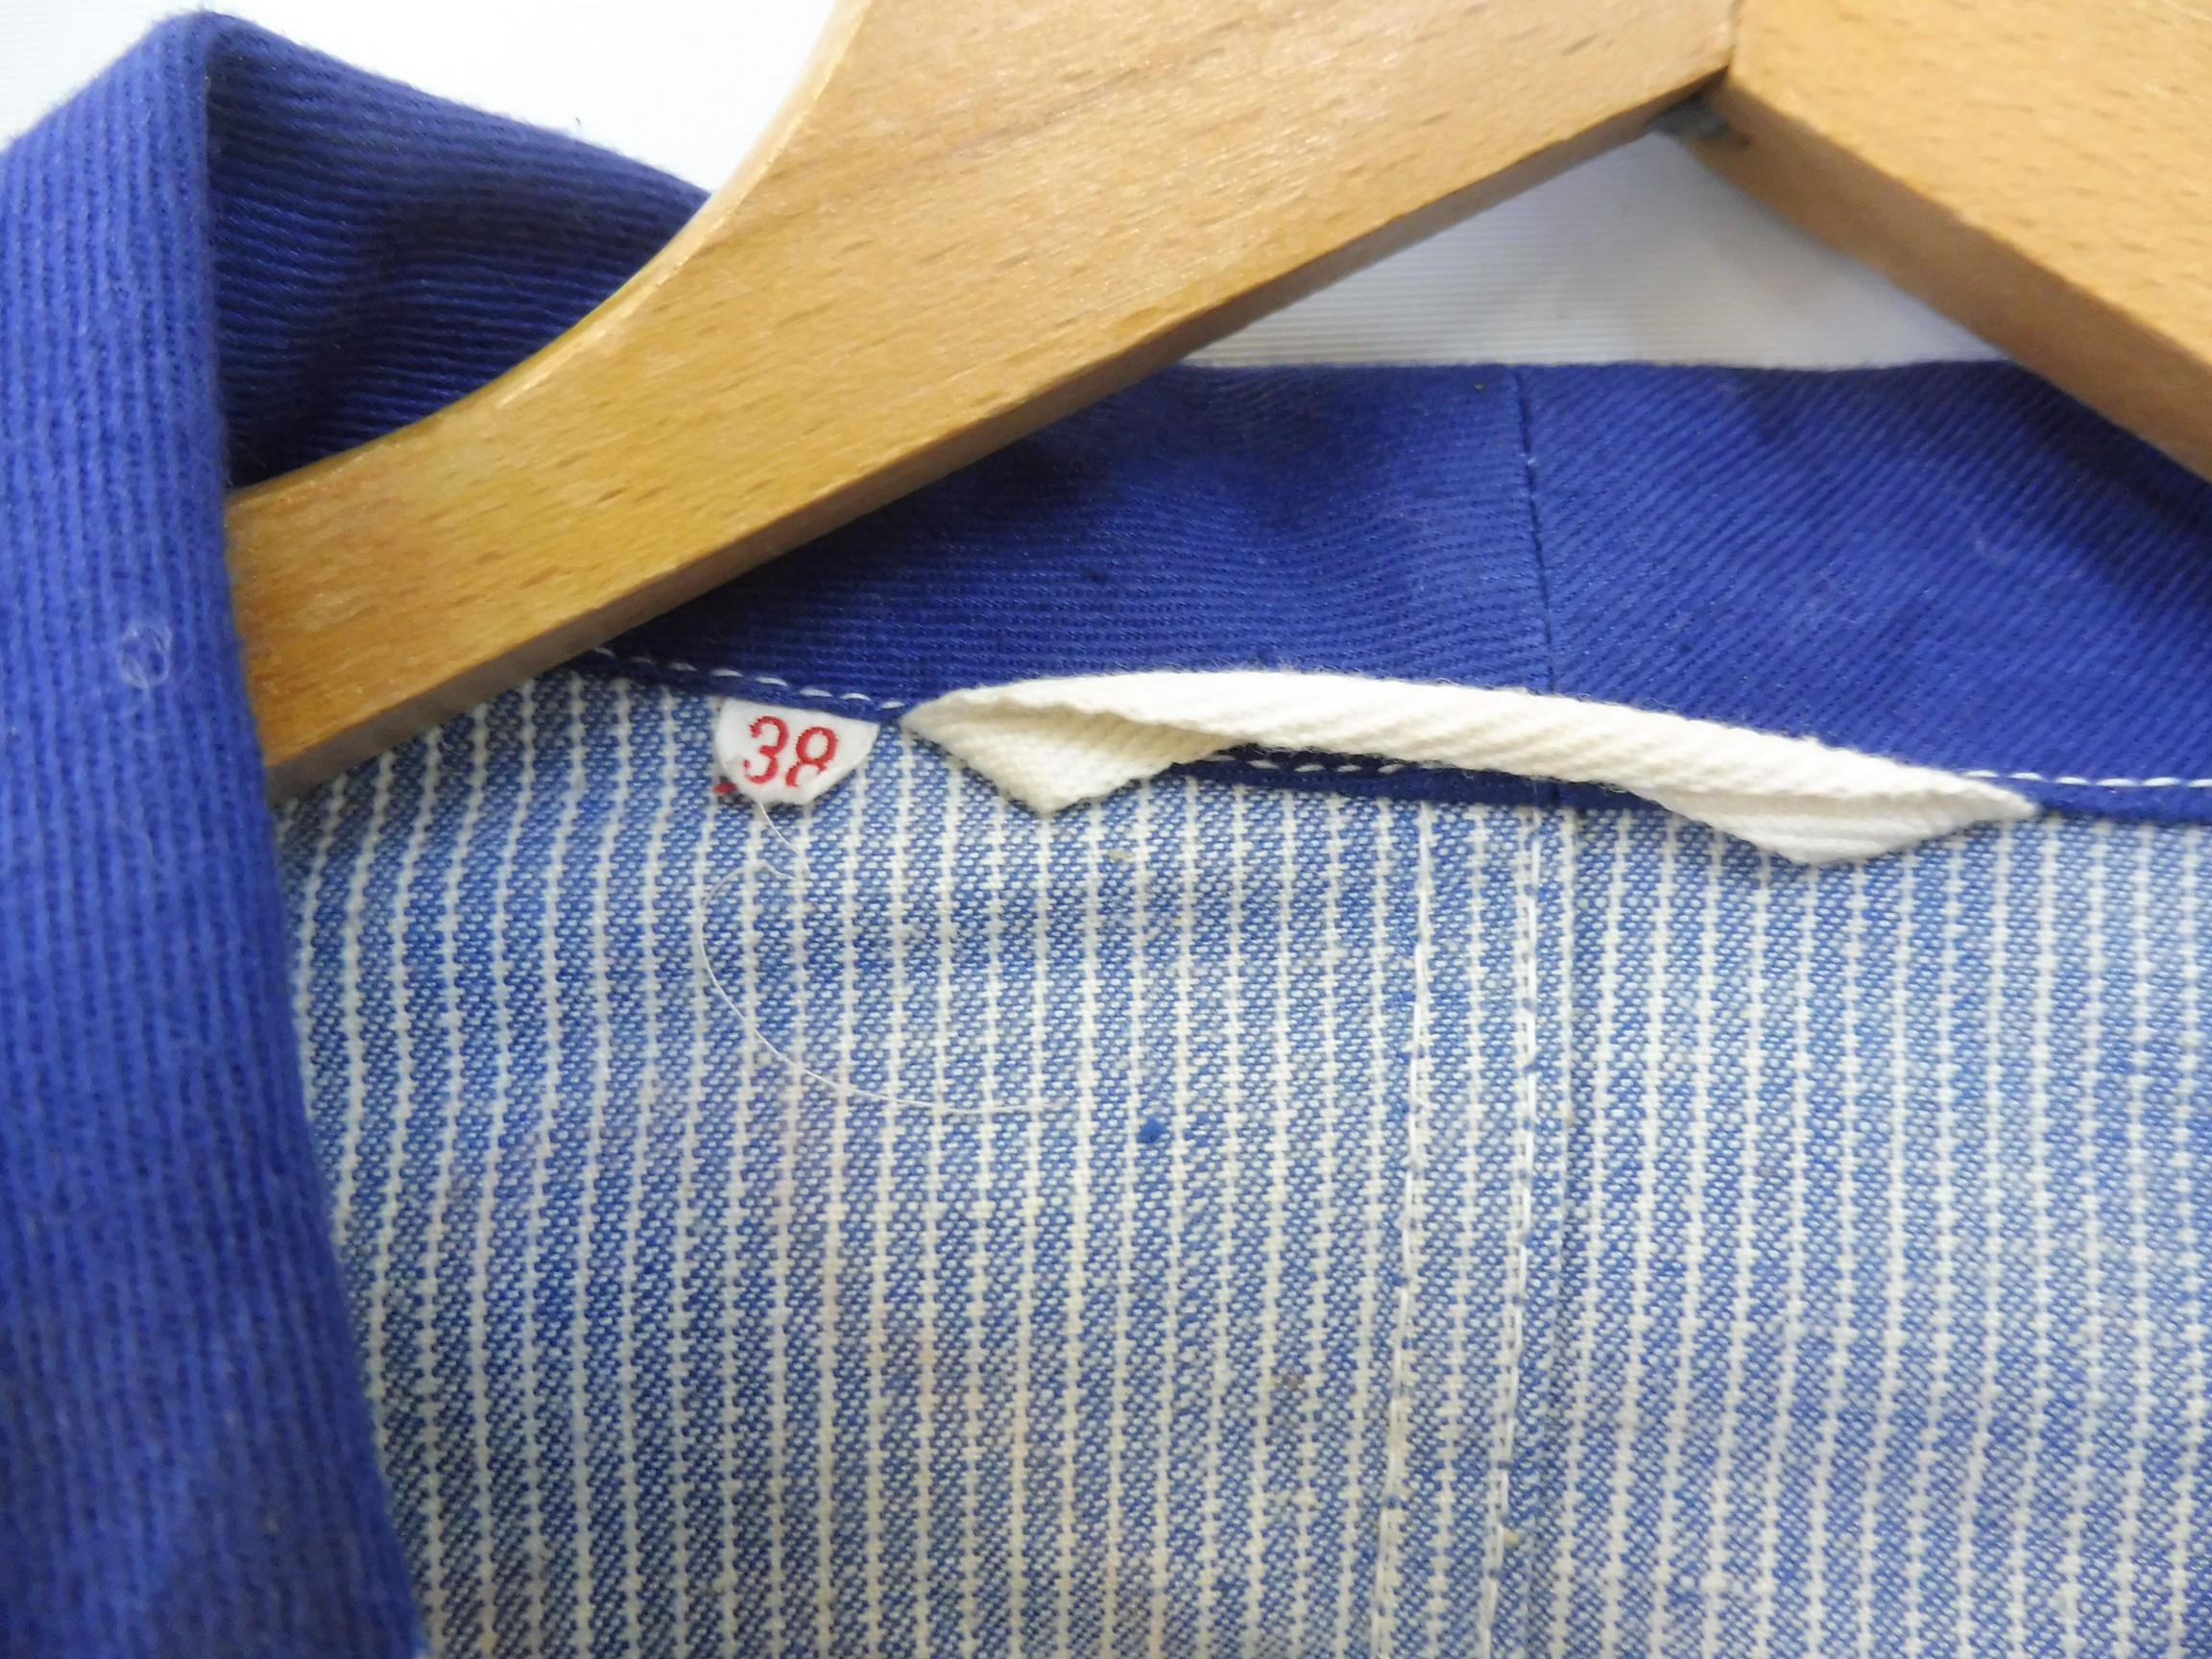 A new old stock overcoat with Esso branding, manufactured by Beacon Reg'd, size 38 (slightly - Image 3 of 6